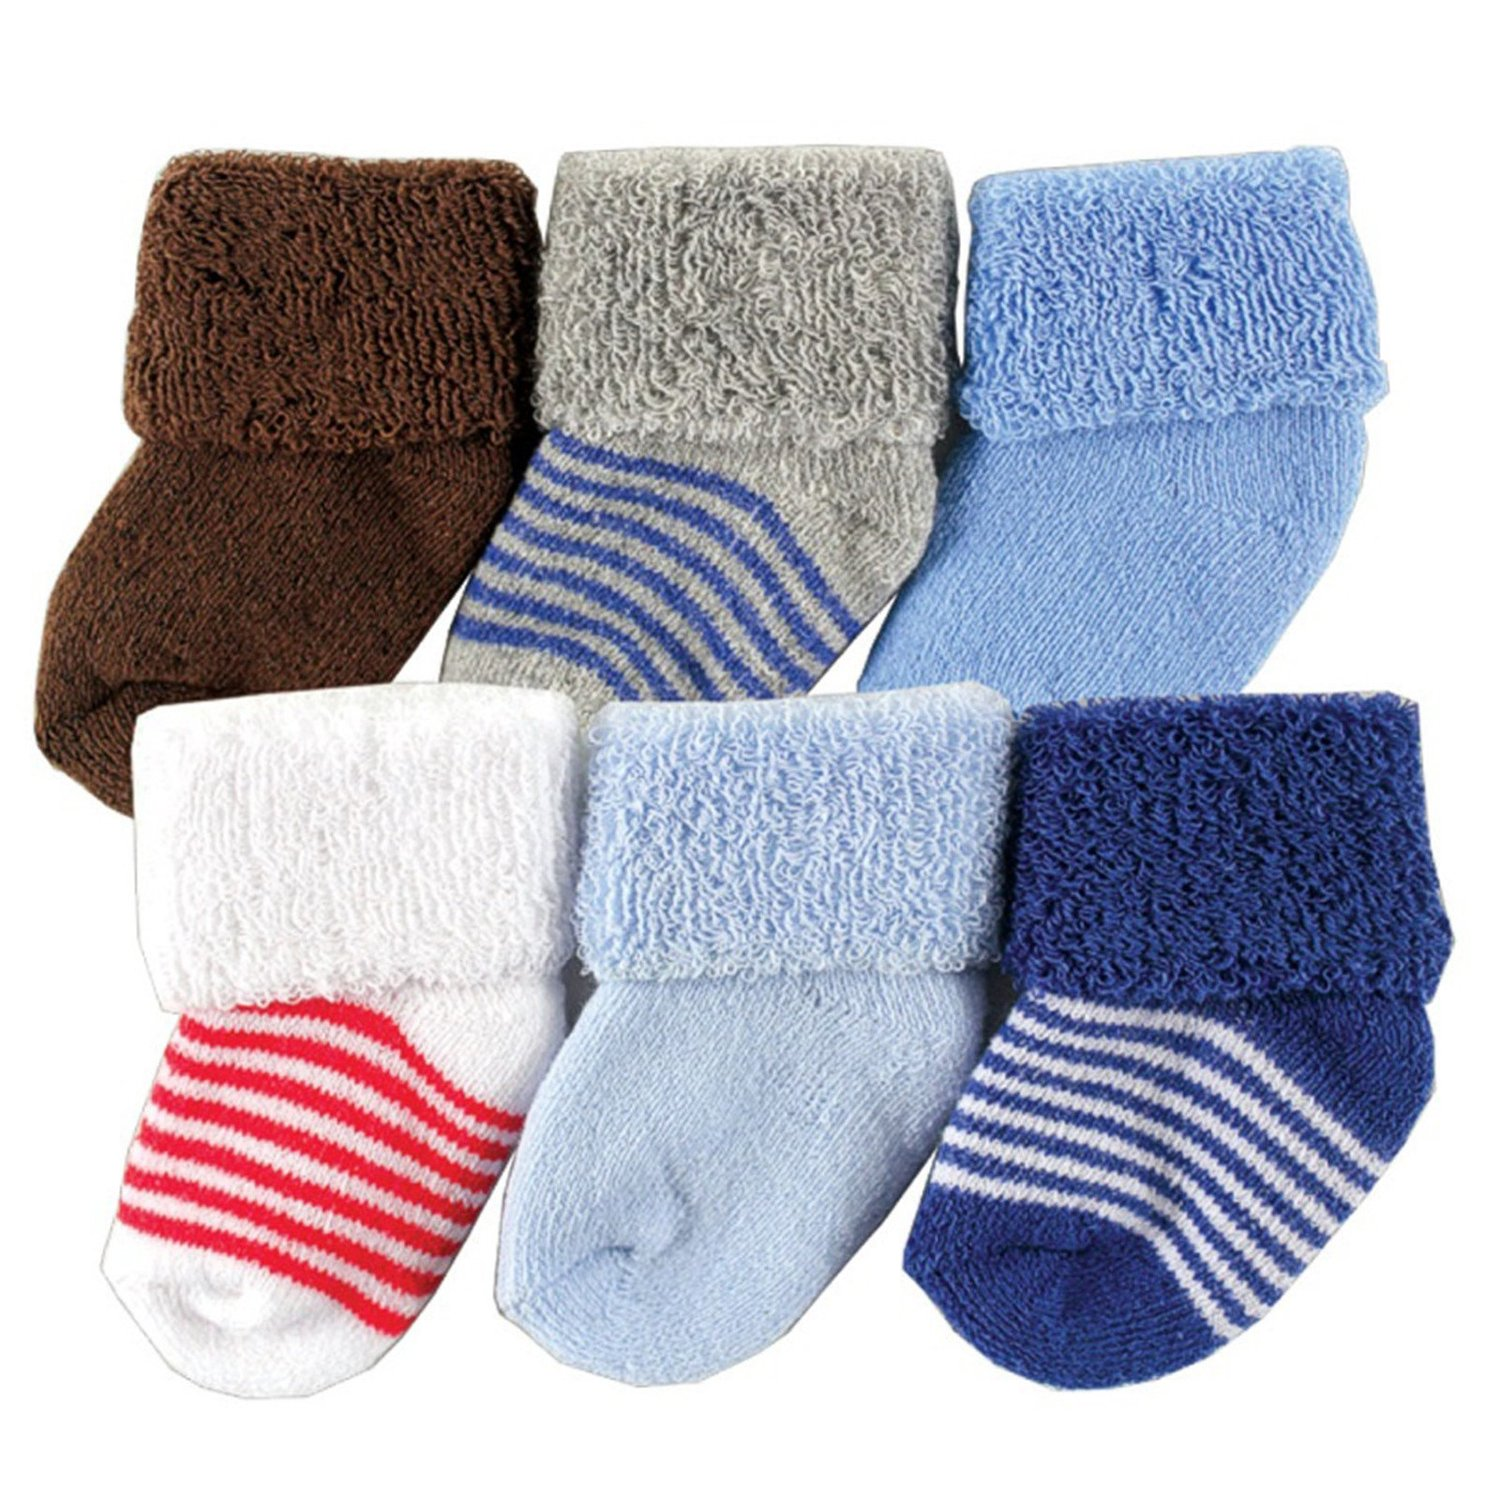 Luvable Friends Newborn Baby Socks 6 Pack, 0-6 Months, Blue: Infant And Toddler Socks